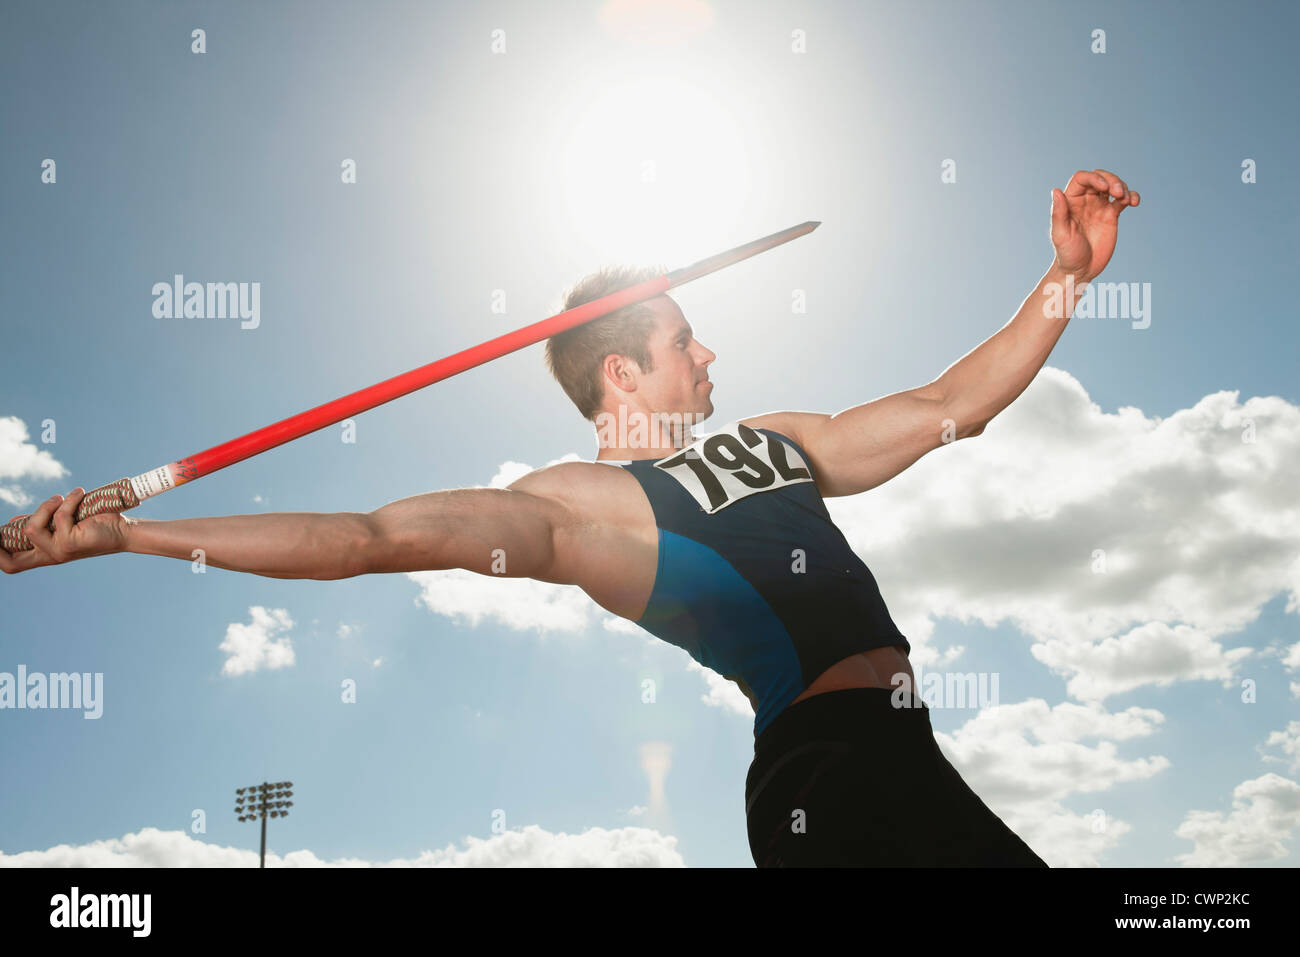 Javelin thrower volti Immagini Stock